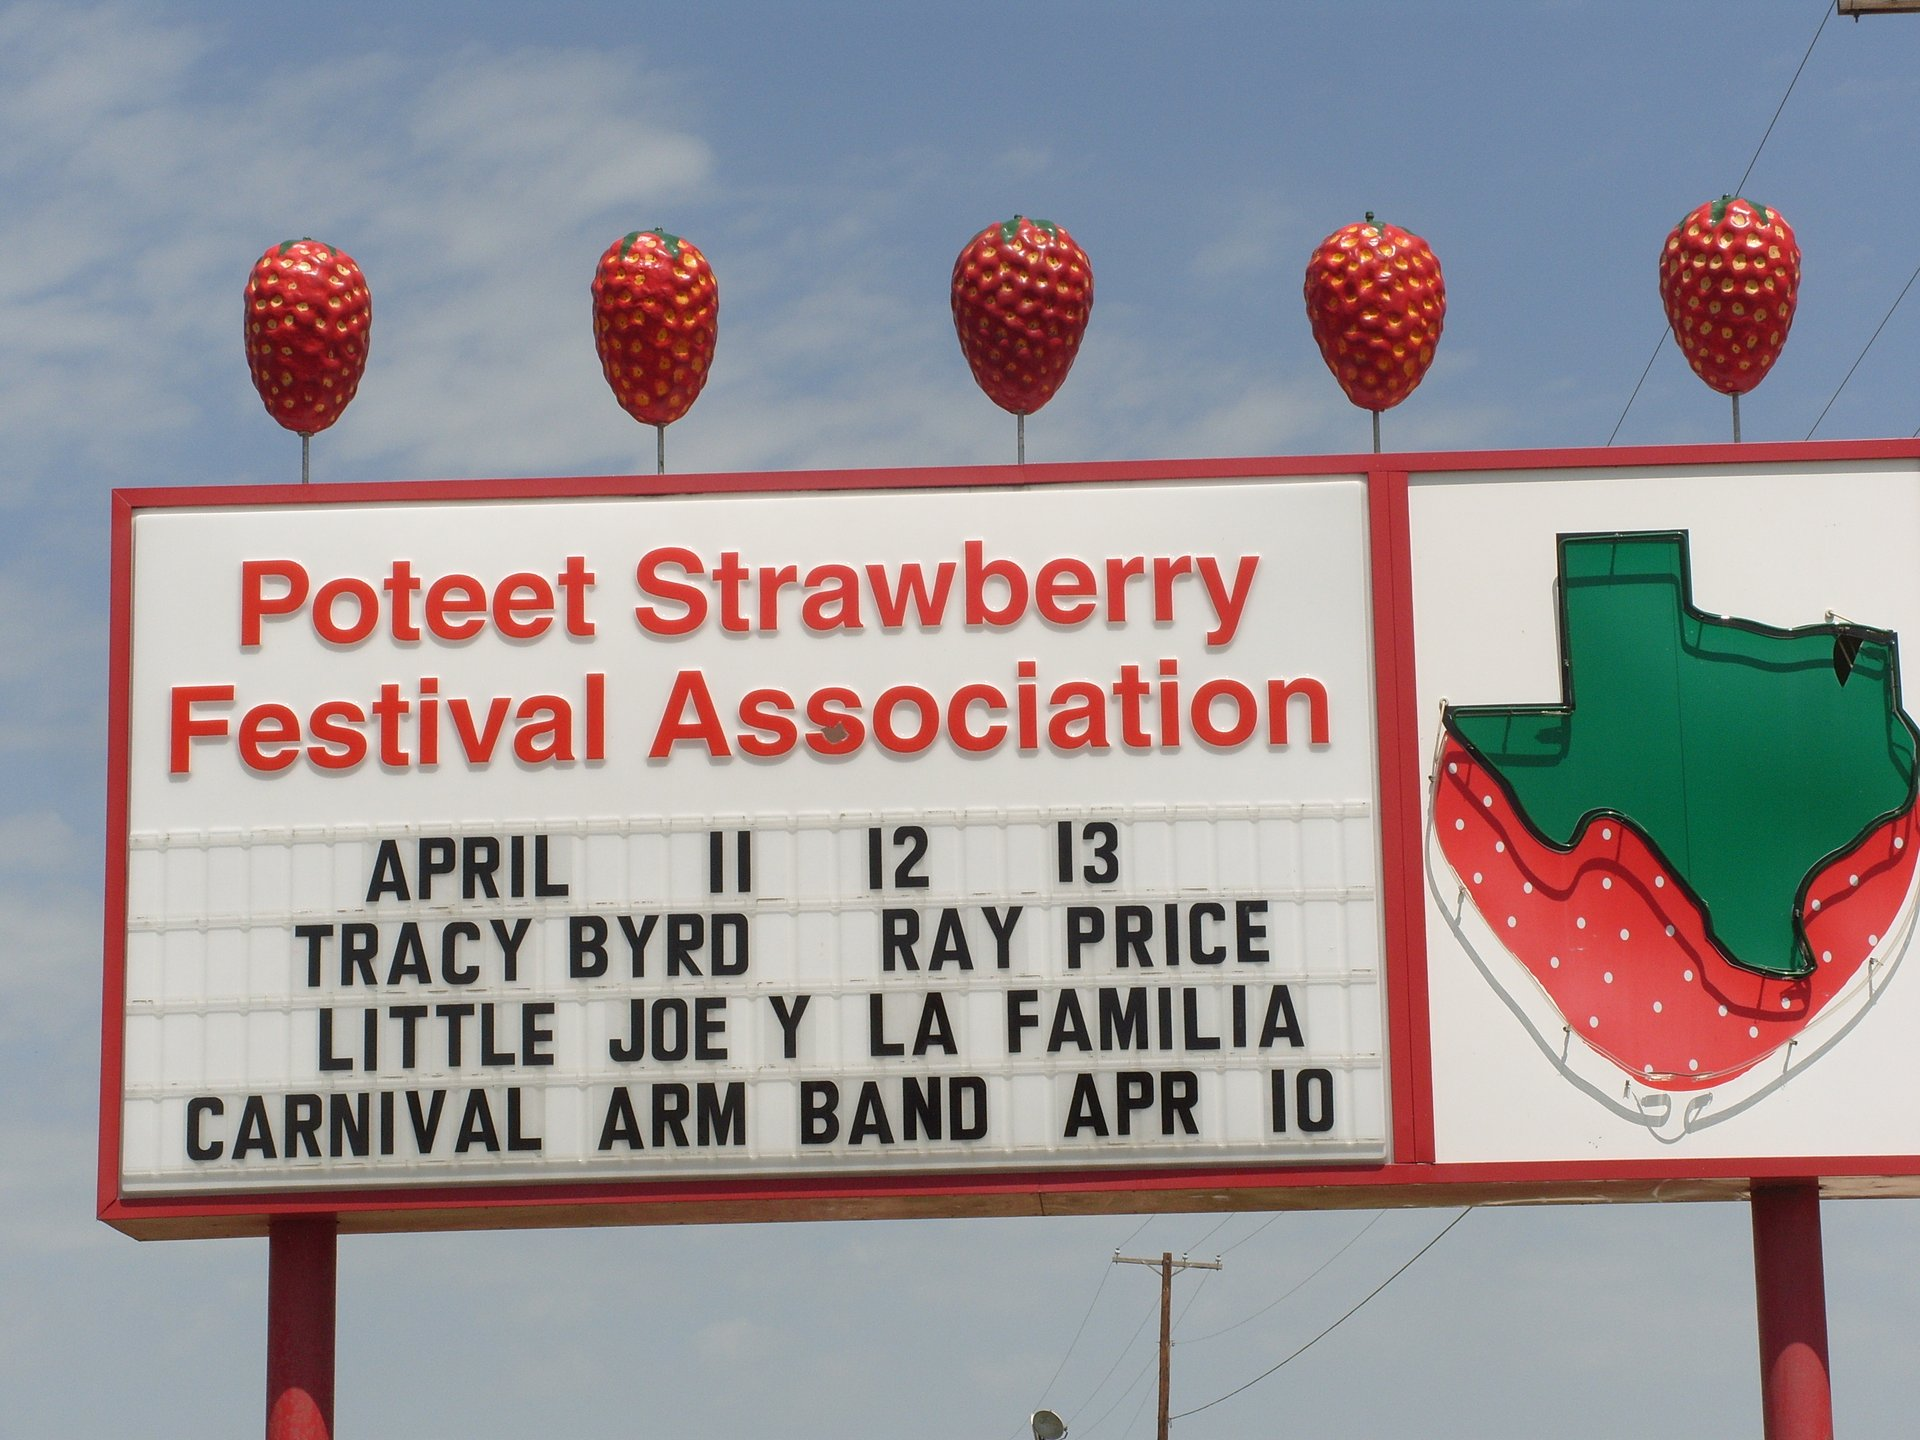 Strawberry Festival 2020 Dates.Poteet Strawberry Festival 2020 In Texas Dates Map